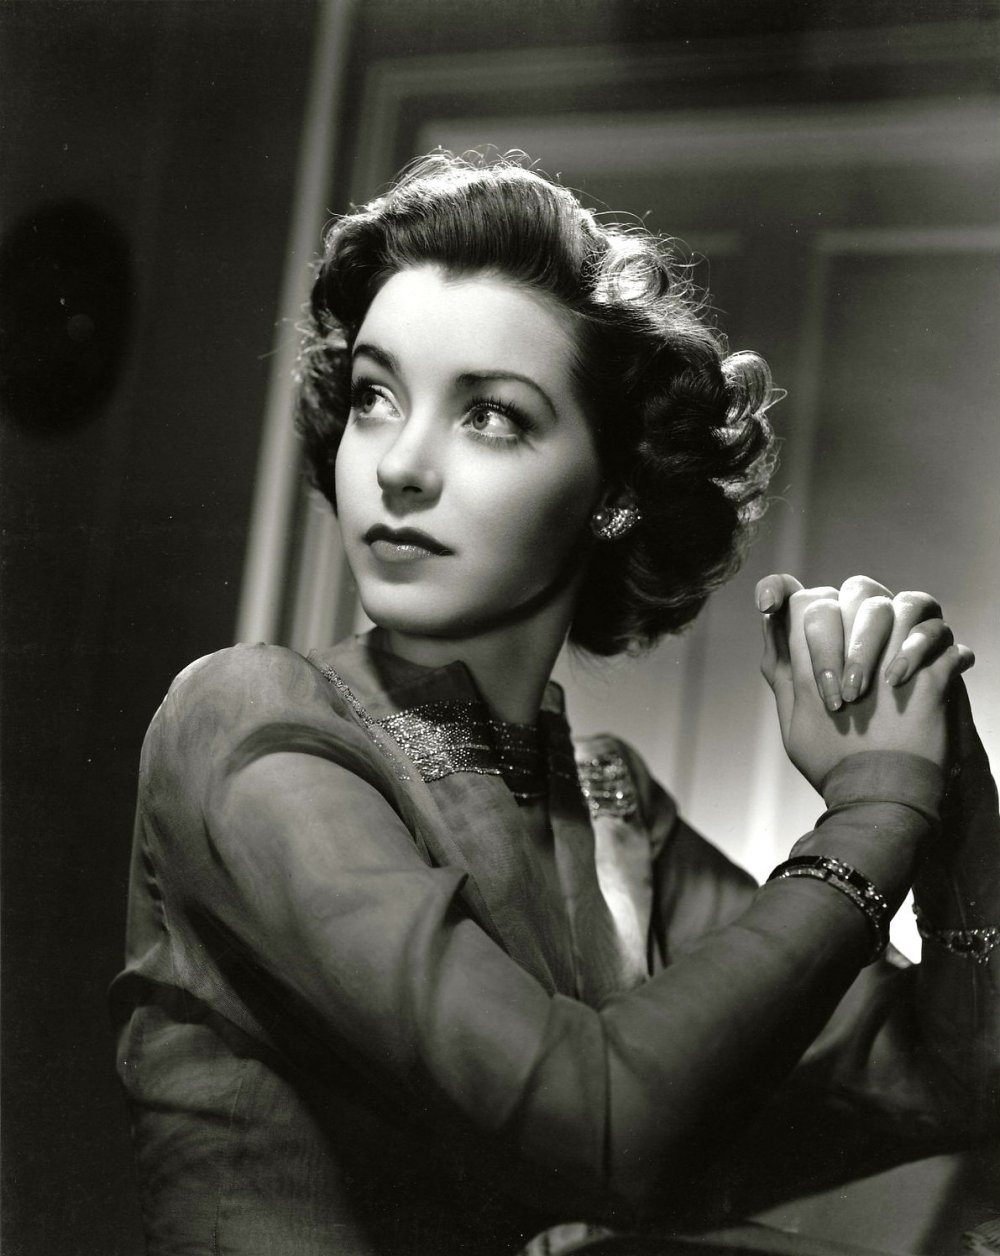 Ass Marsha Hunt (actress, born 1946) naked photo 2017